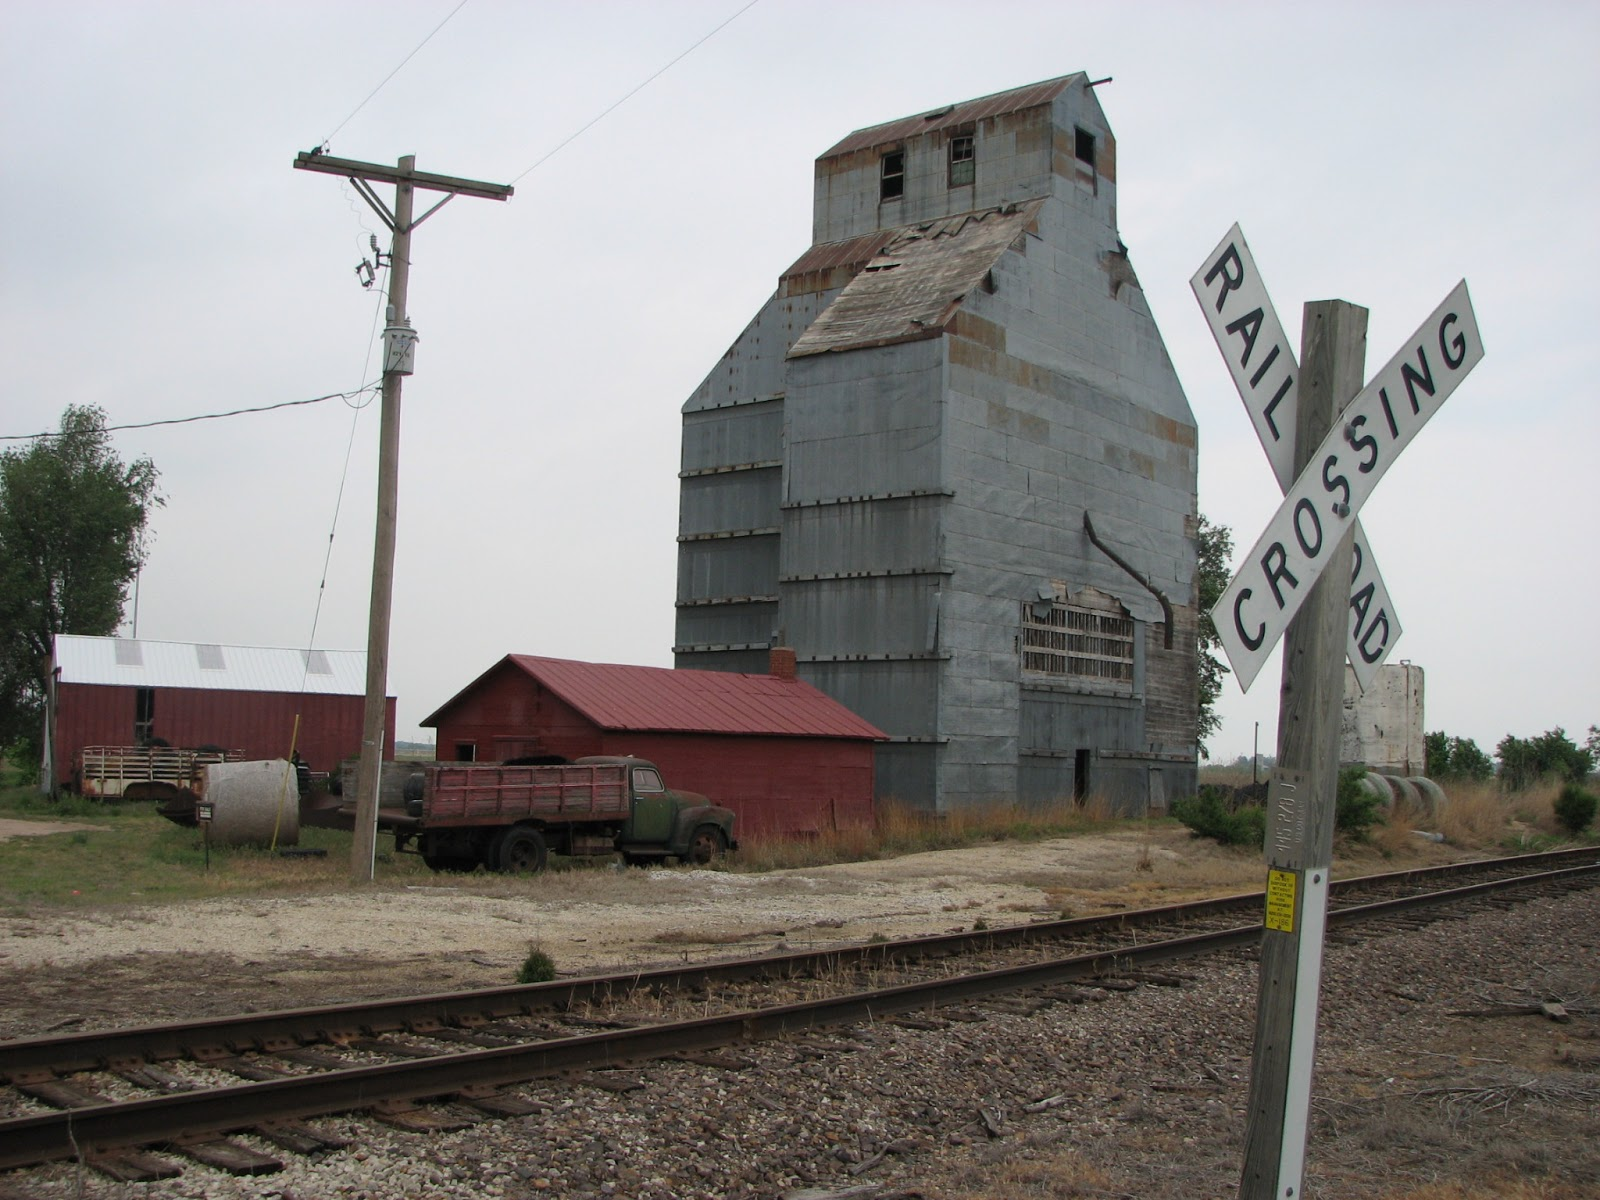 Kansas reno county turon - Here Are Just A Few Of Them Reported On In The Publication Early Ghost Towns Post Offices And Hamlets In Reno County Kansas